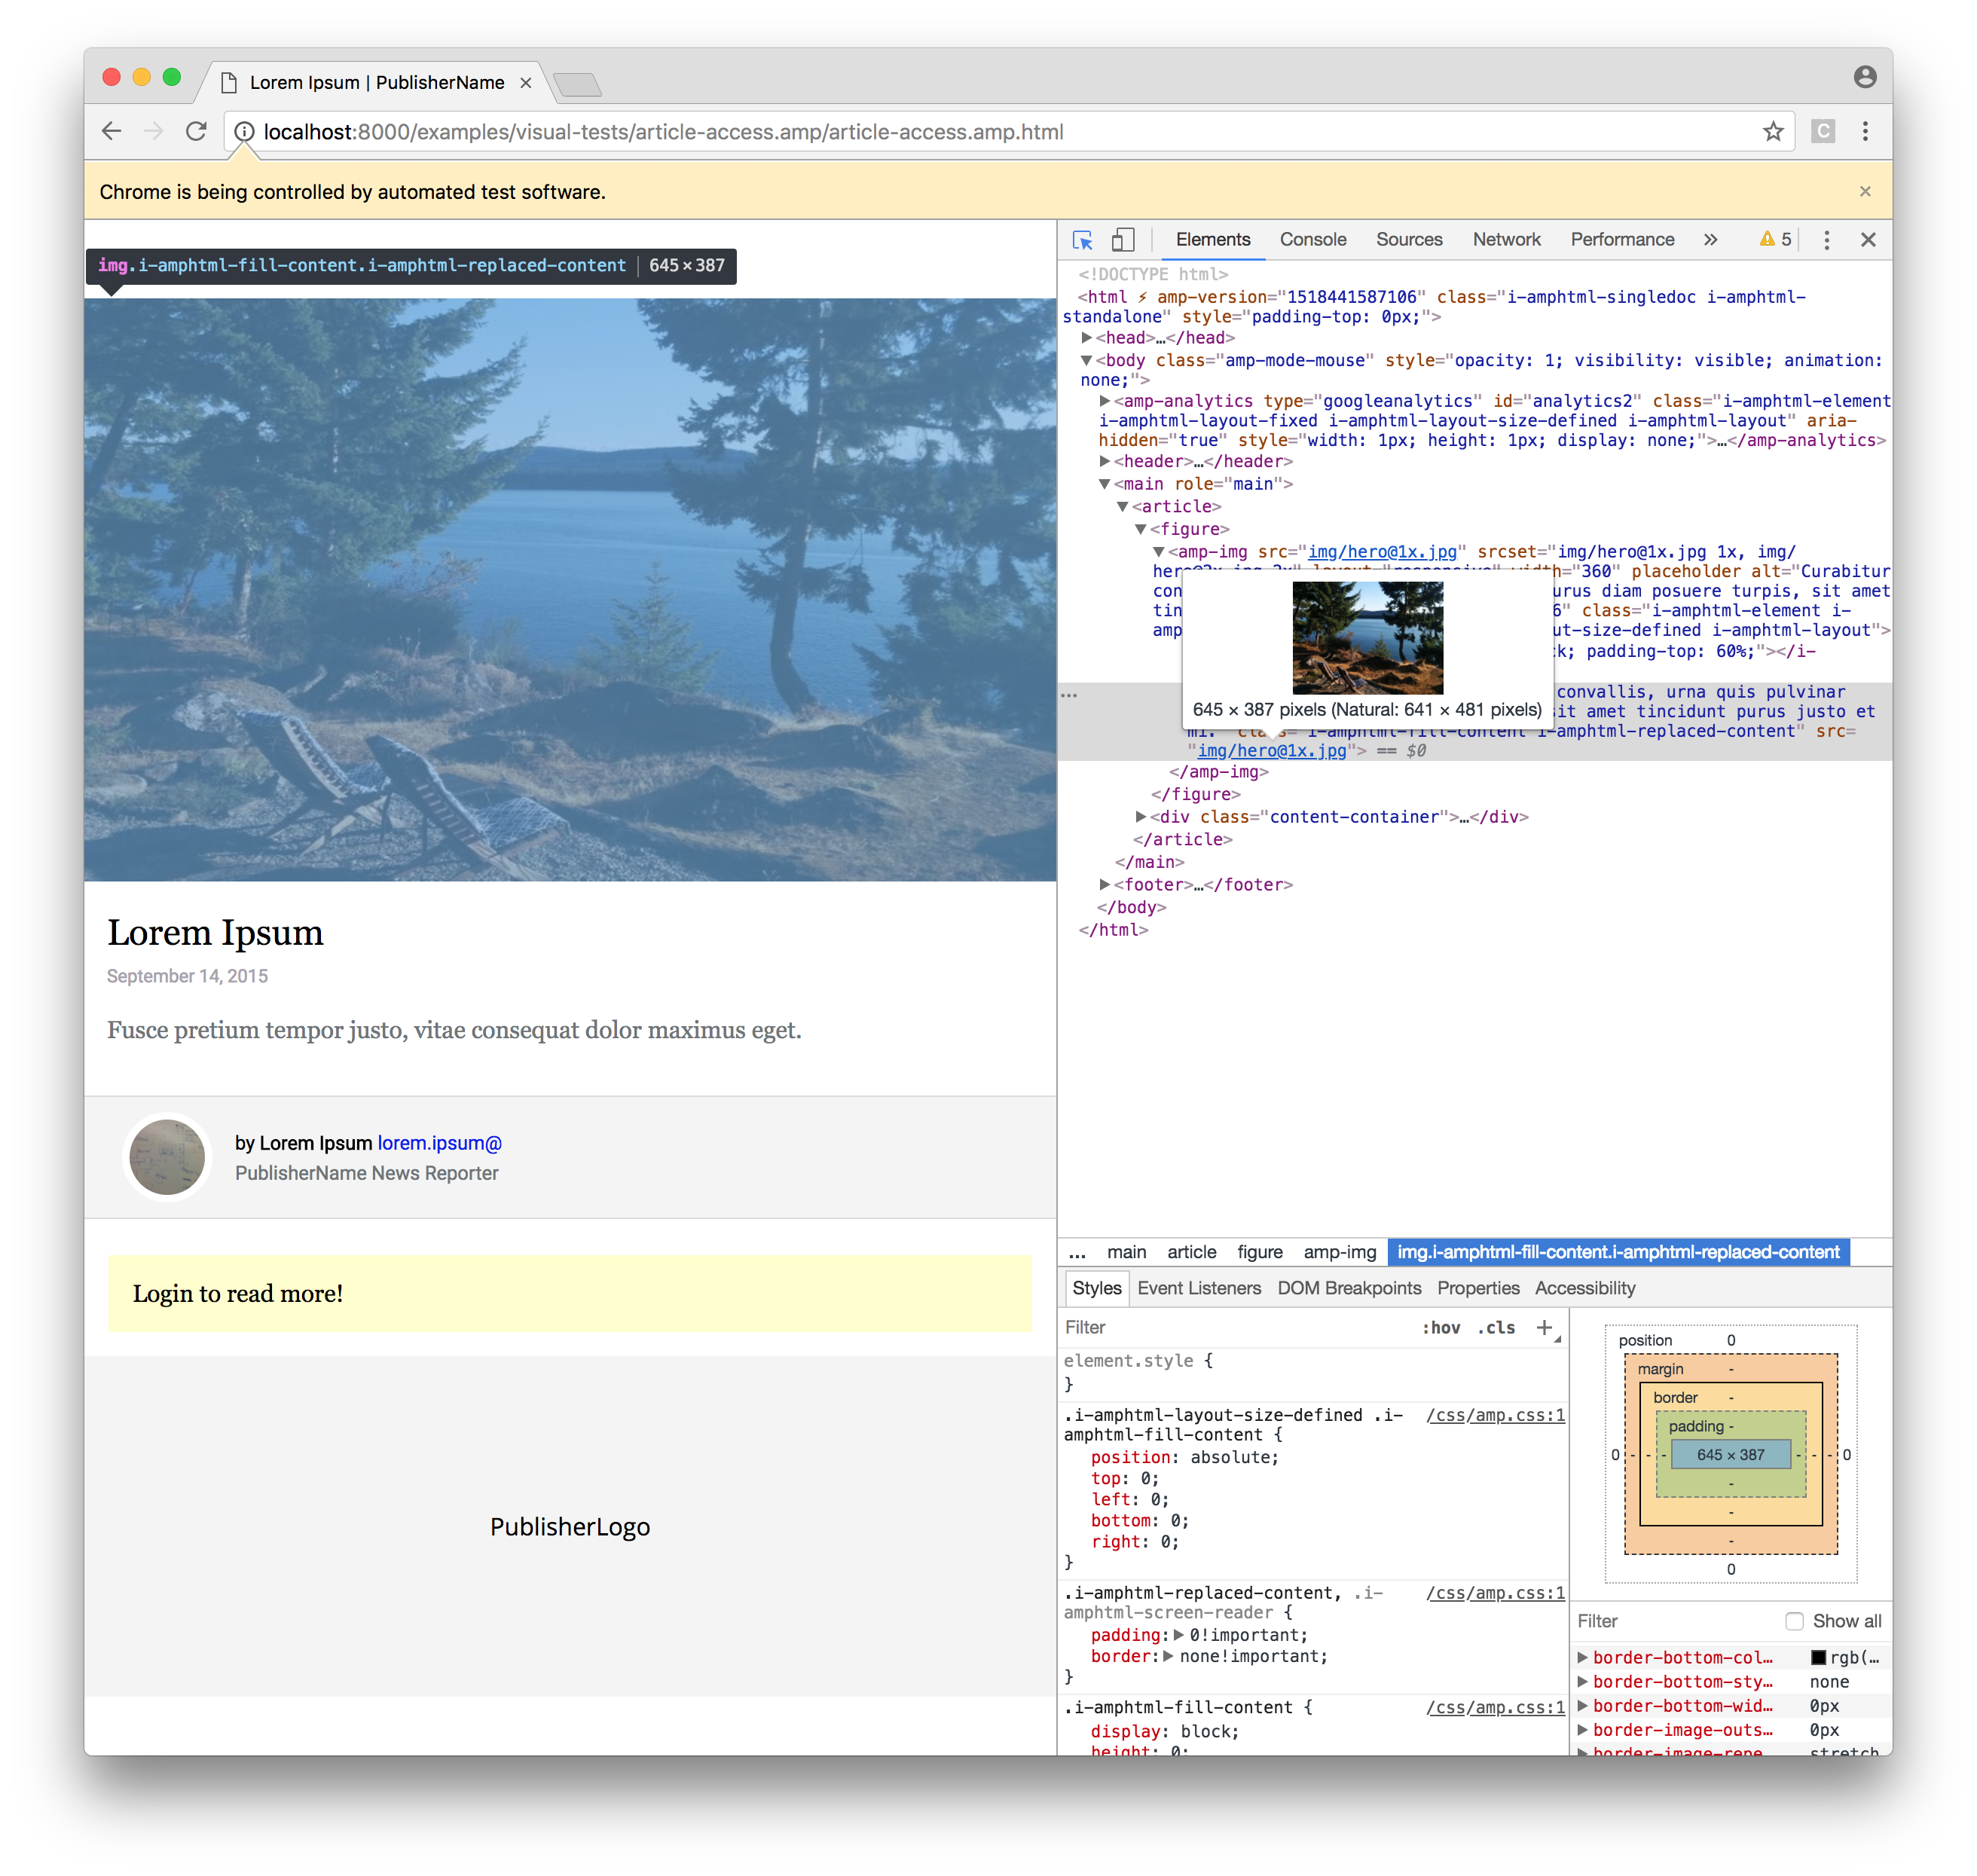 Enabling javascript causes images to double in height · Issue #51